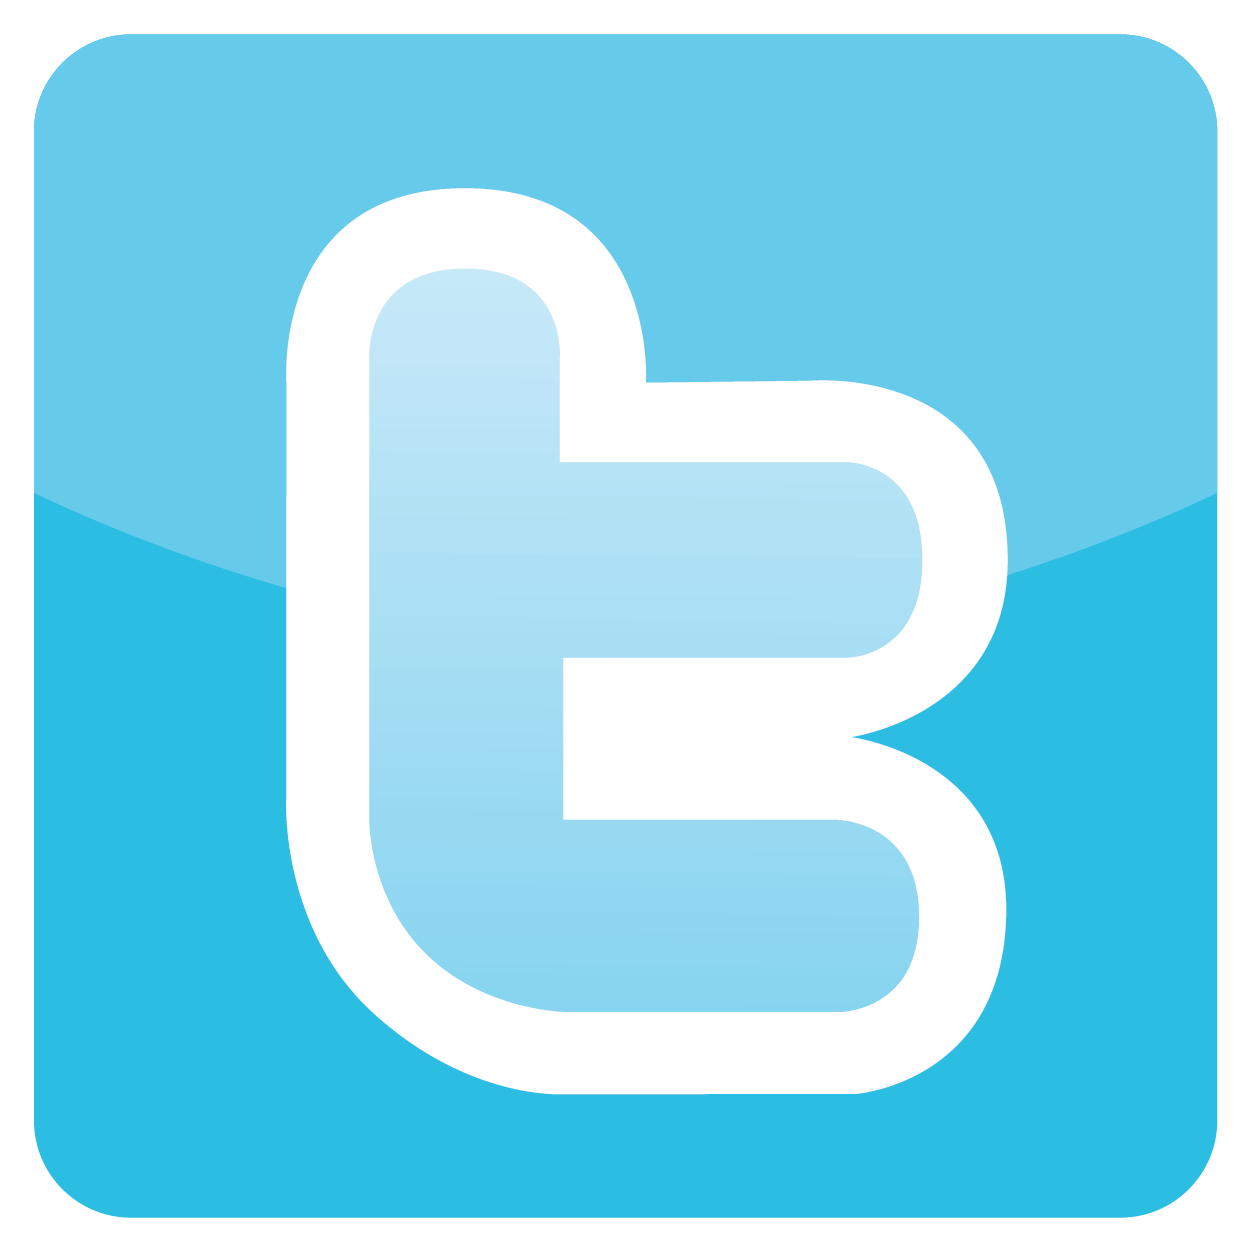 Logo Twitter in PNG